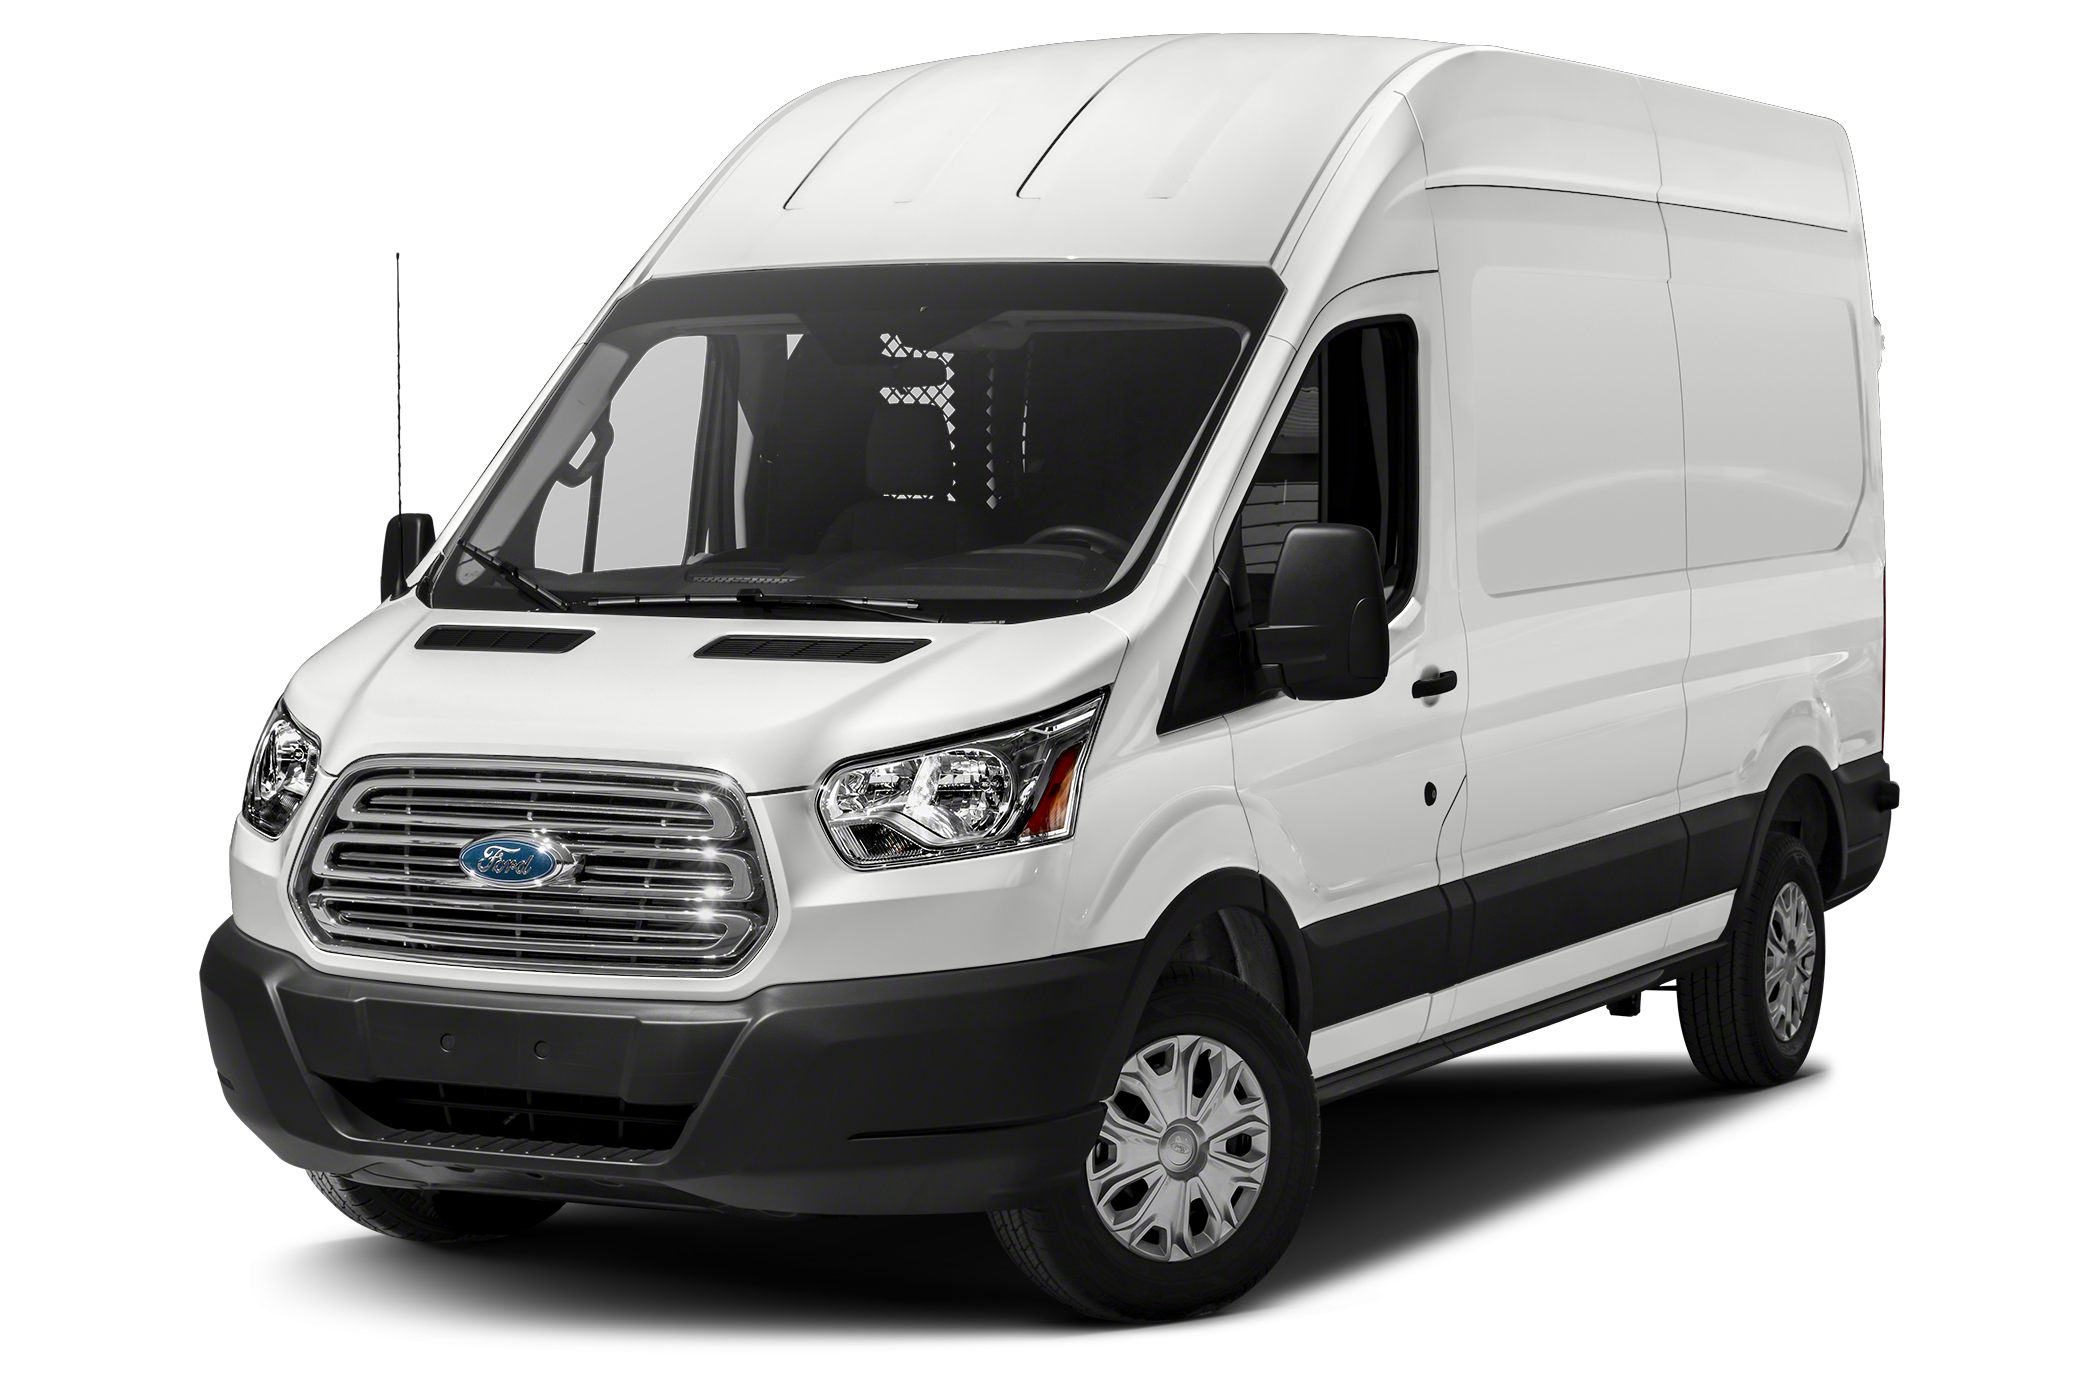 Mercedes benz sprinter 3500xd prices reviews and new for 2017 mercedes benz 3500xd high roof v6 4wd cargo van